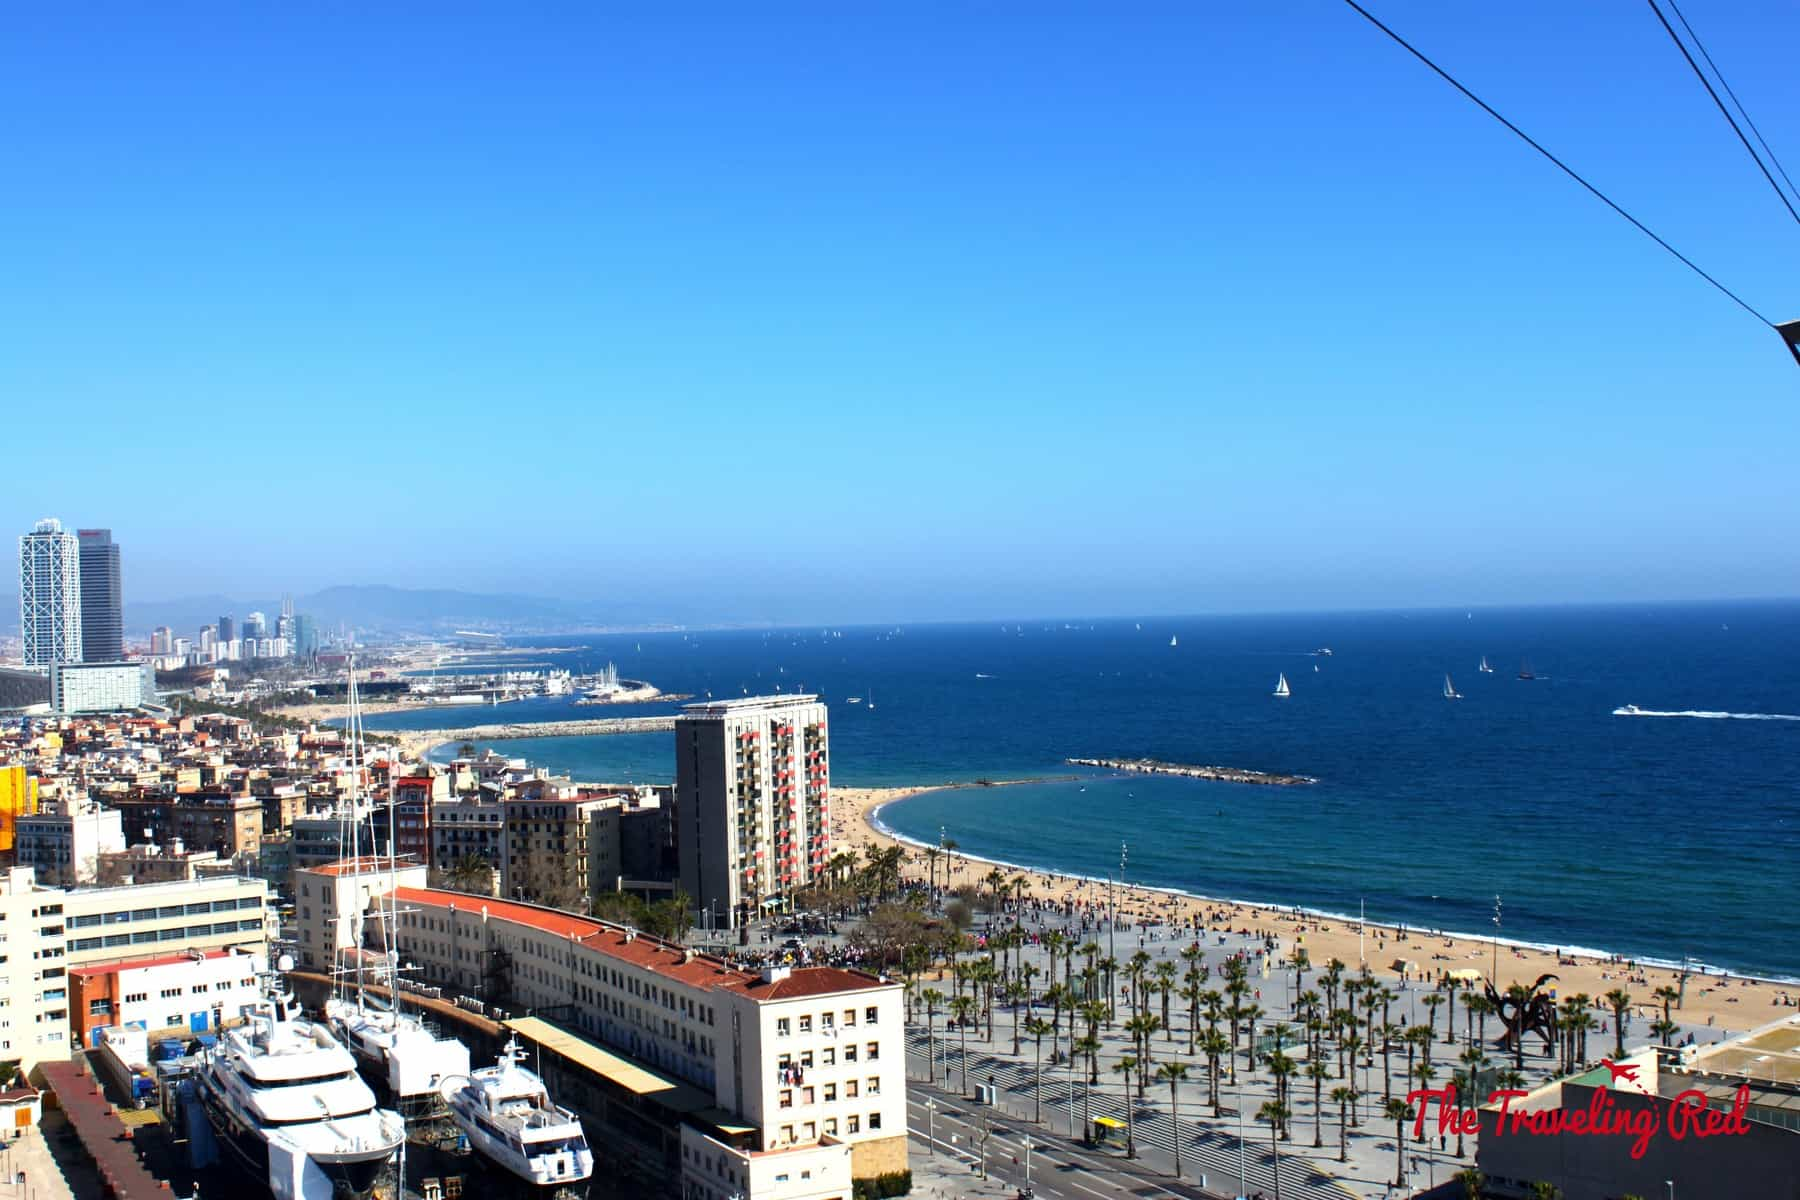 At the end of the boardwalk in Barceloneta is the Teleferic, a cable car that takes you up to Montjuic. The Teleferic has 360 degree views overlooking Barcelona, the beach and the marina full of mega-yachts.